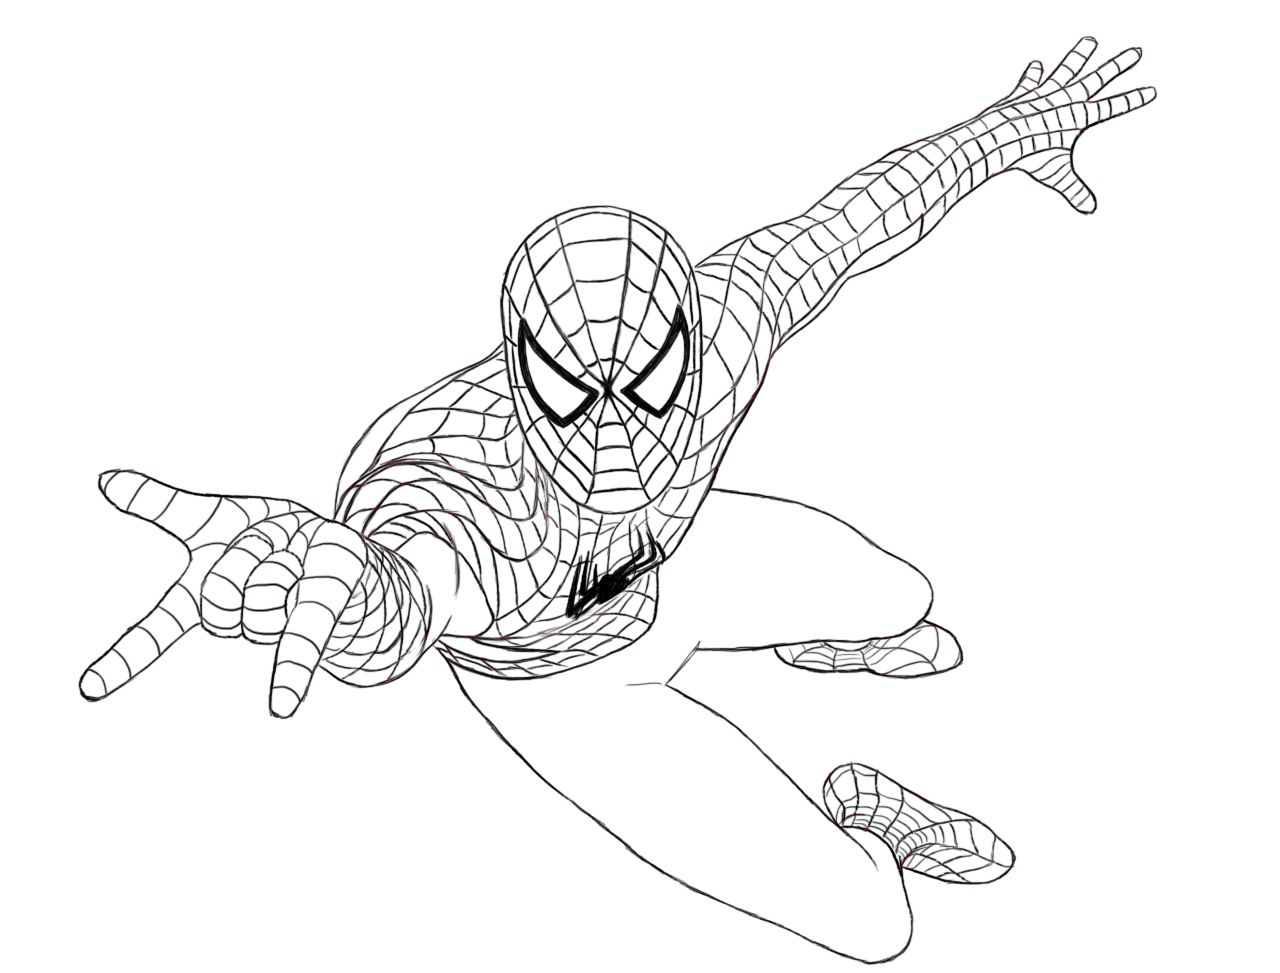 How To Draw Spiderman Spiderman Drawing Spiderman Coloring